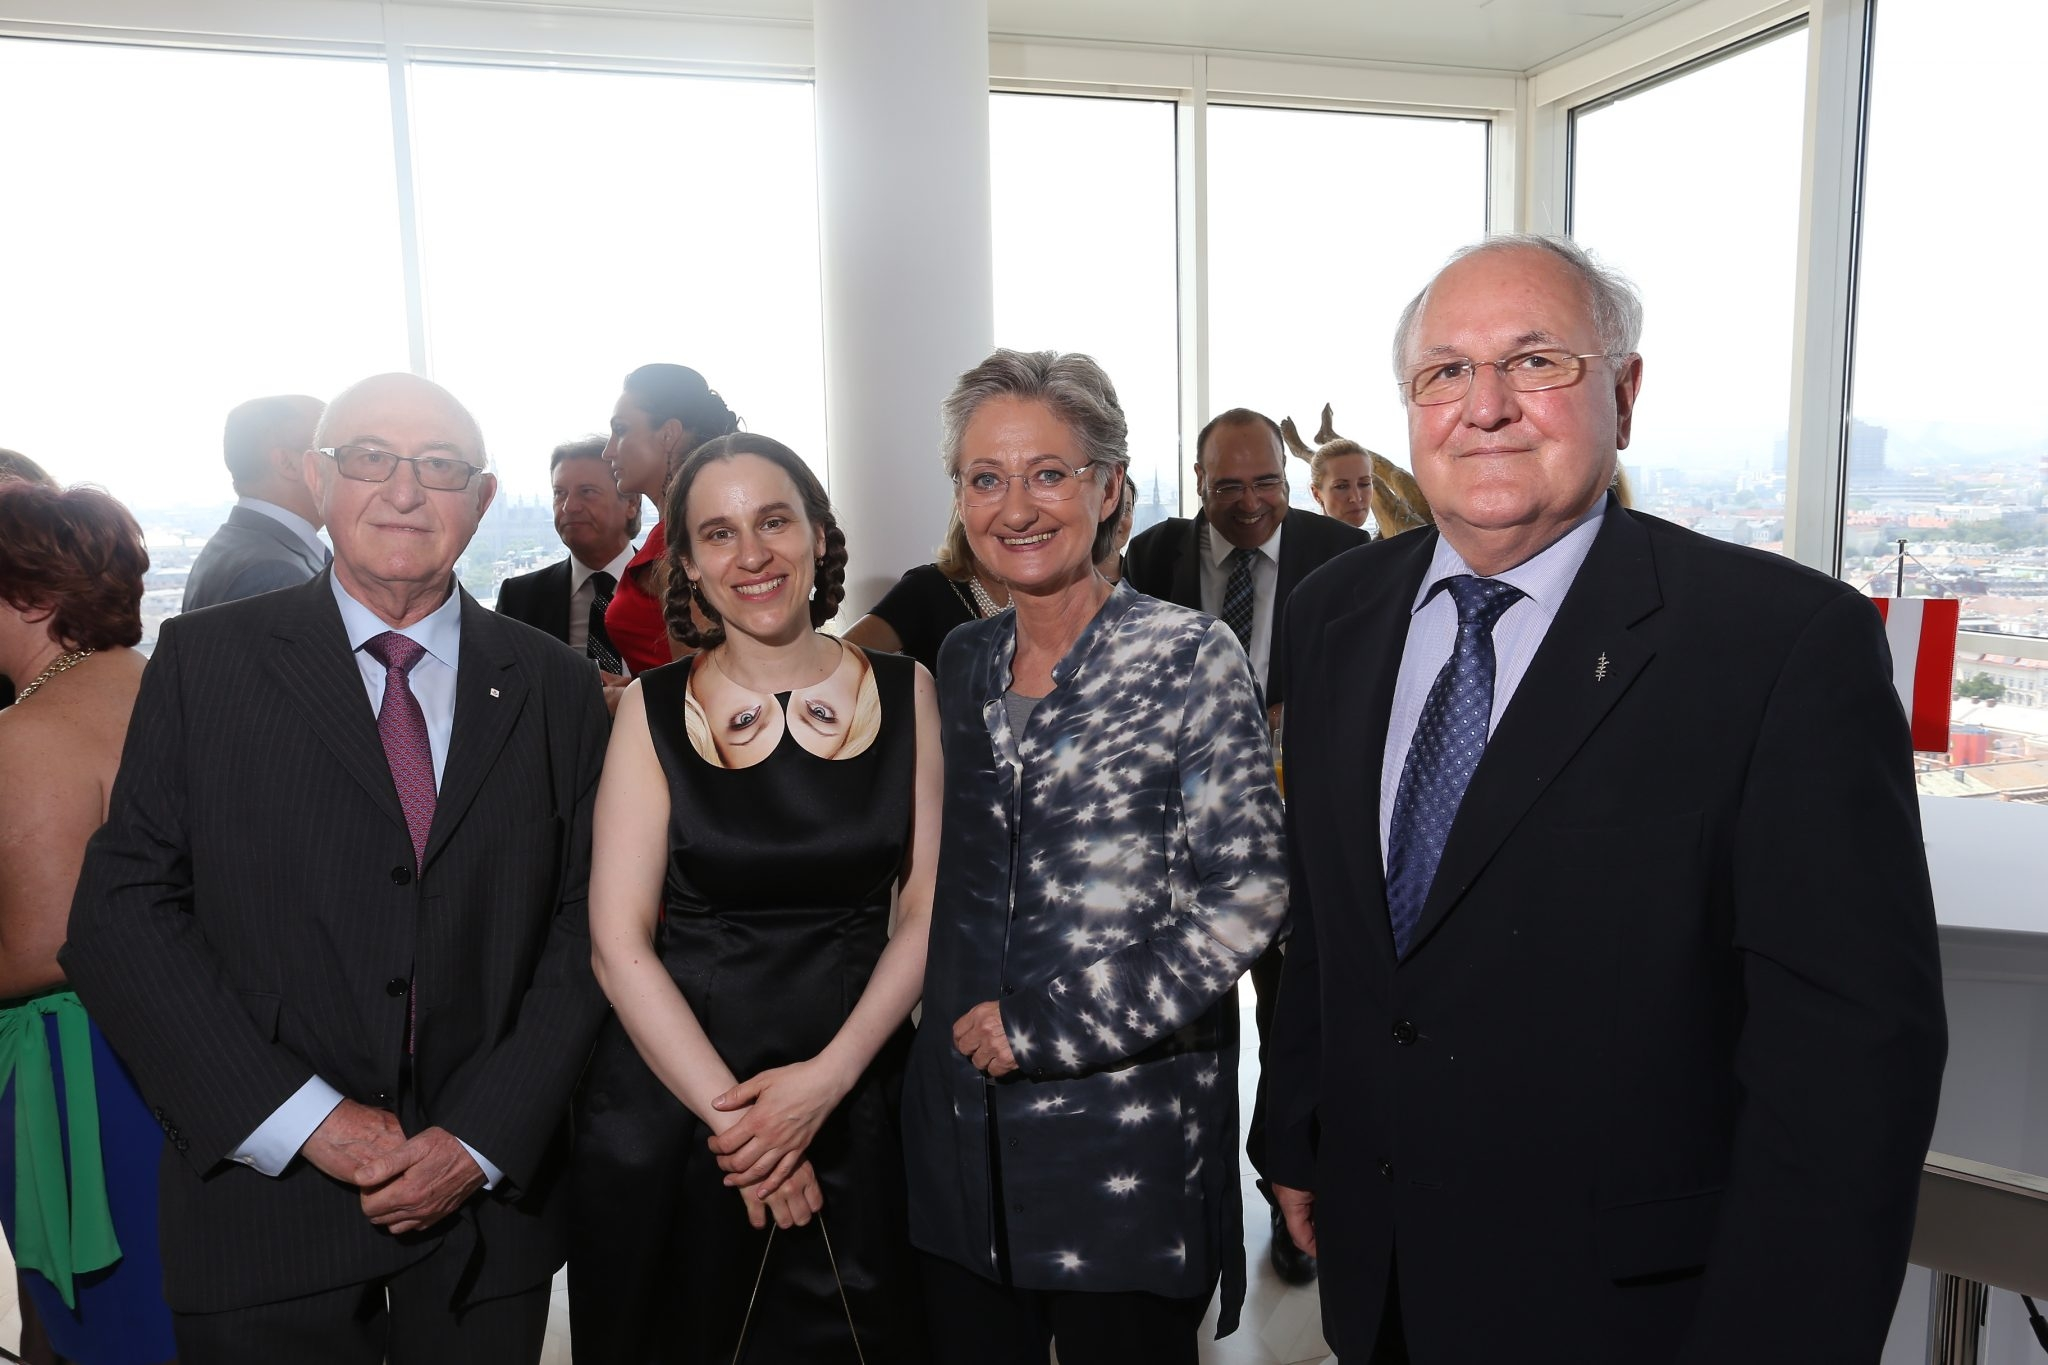 On the picture from left to right: Günter Geyer (chairman of the managing board of Wiener Städtische Versicherungsverein), artist Dorota Sadovská, Claudia Schmied (Federal Minister for Education, Art and Culture) and Dušan Čaplovič (Minister for Education, Youth and Sport of the Slovak Republic) © Roman Zach-Kiesling